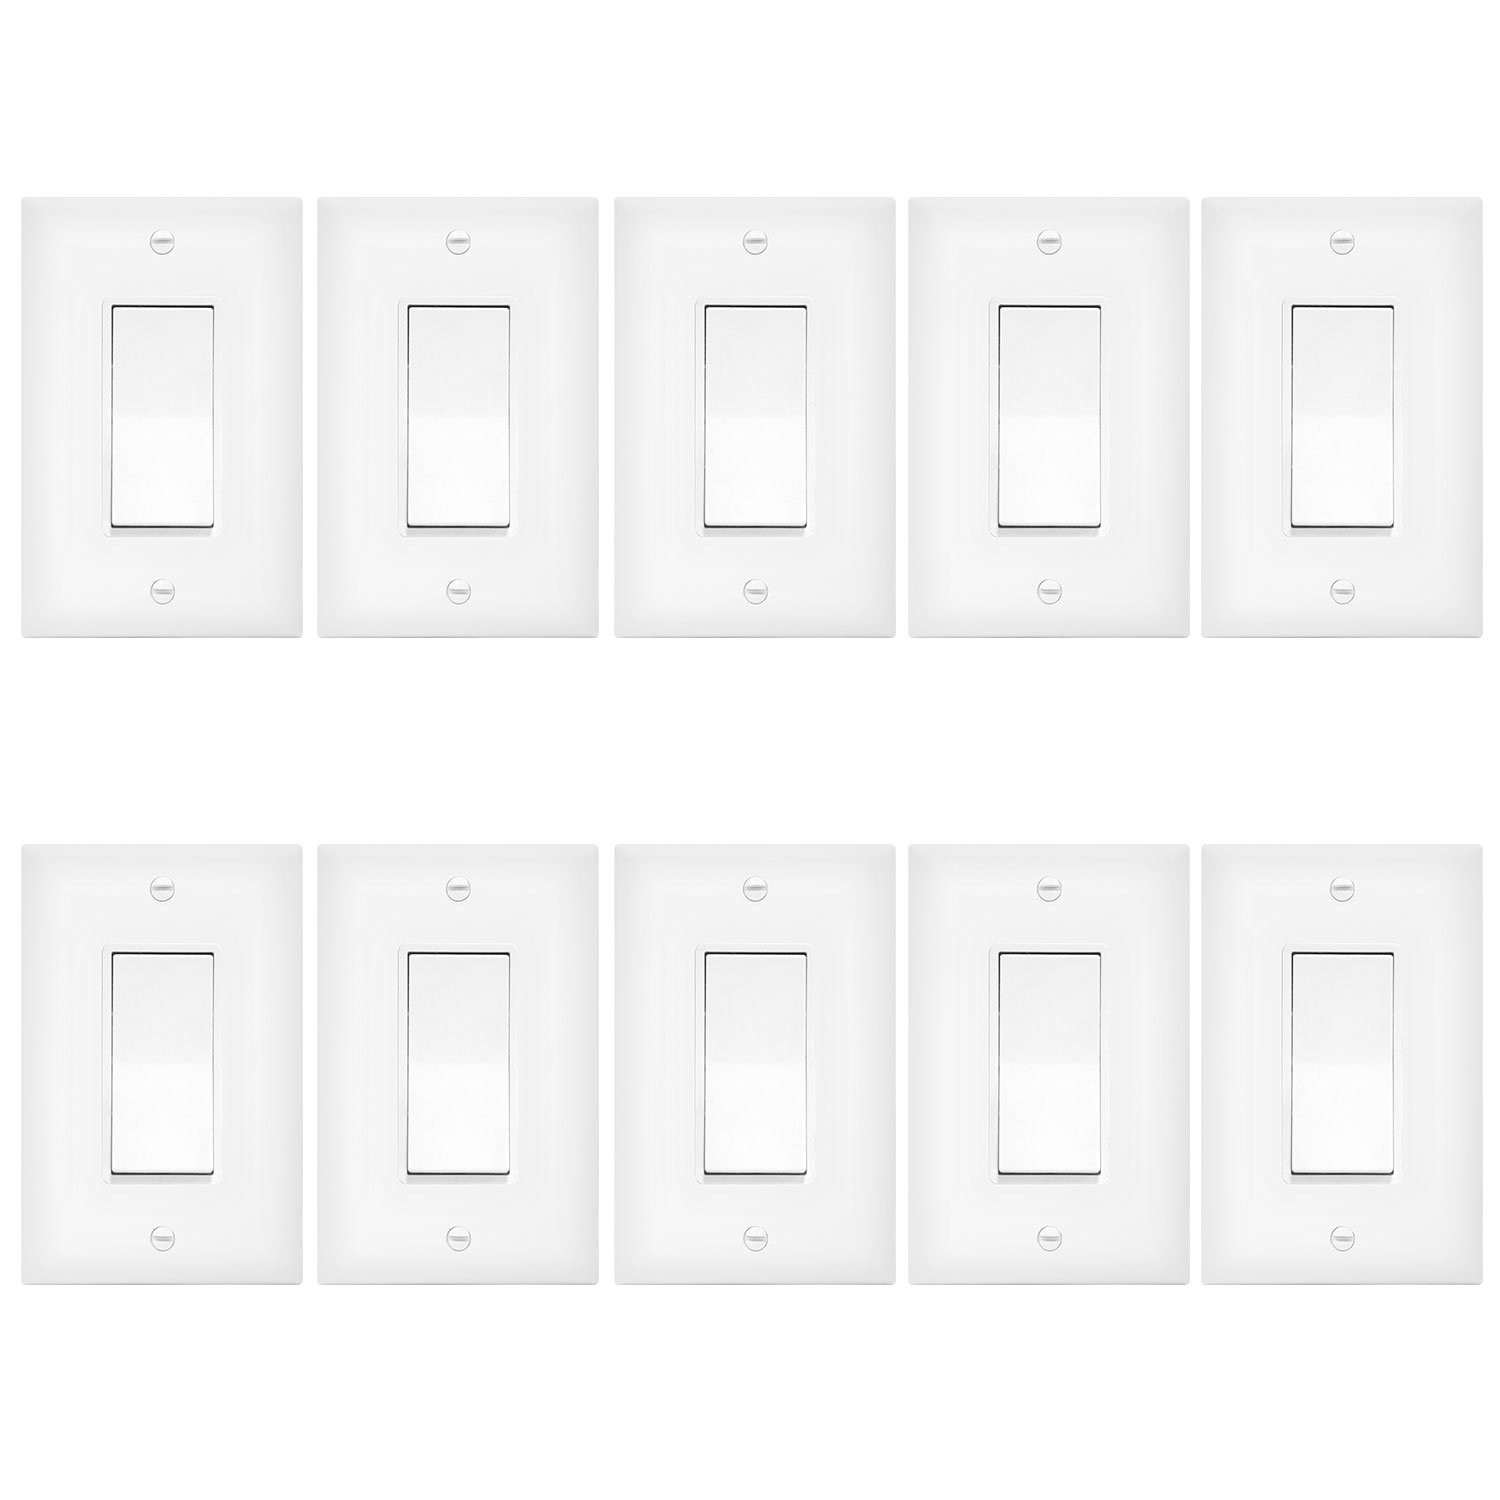 Enerlites 3-Way Light Switch with Covers (White)